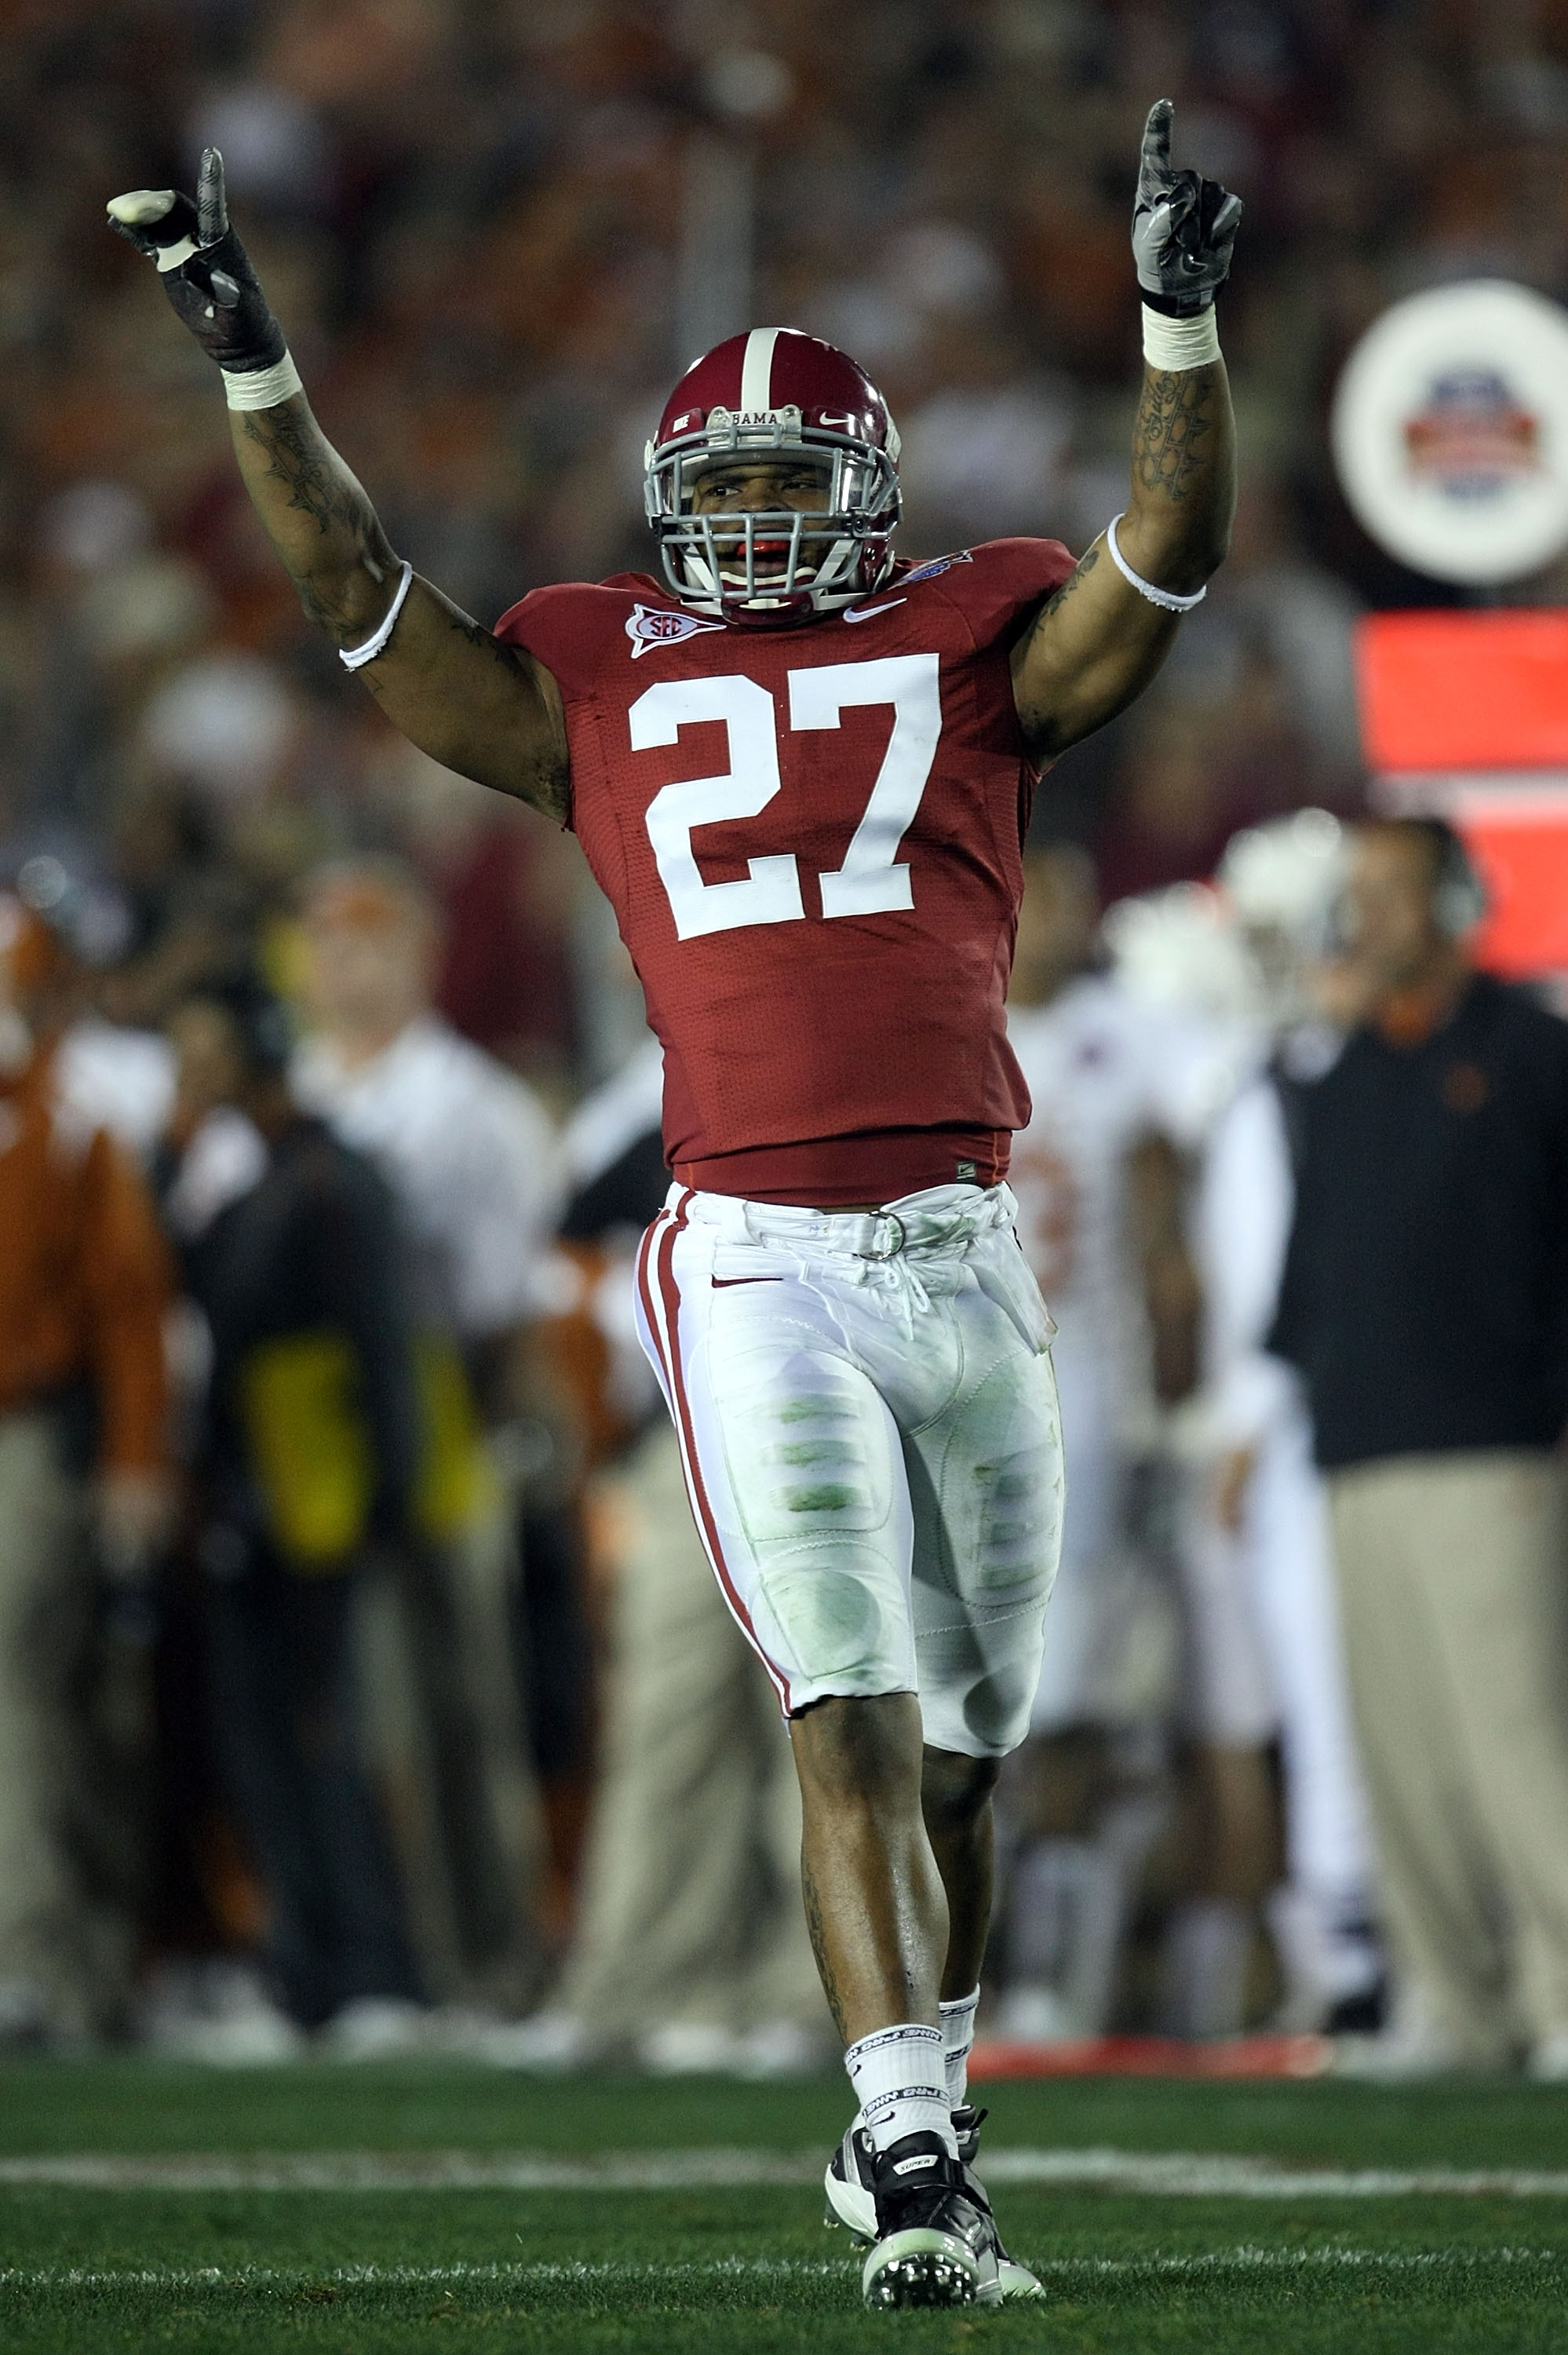 PASADENA, CA - JANUARY 07:  Cornerback Justin Woodall #27 of the Alabama Crimson Tide celebrates after winning the Citi BCS National Championship game over the Texas Longhorns at the Rose Bowl on January 7, 2010 in Pasadena, California. The Crimson Tide d